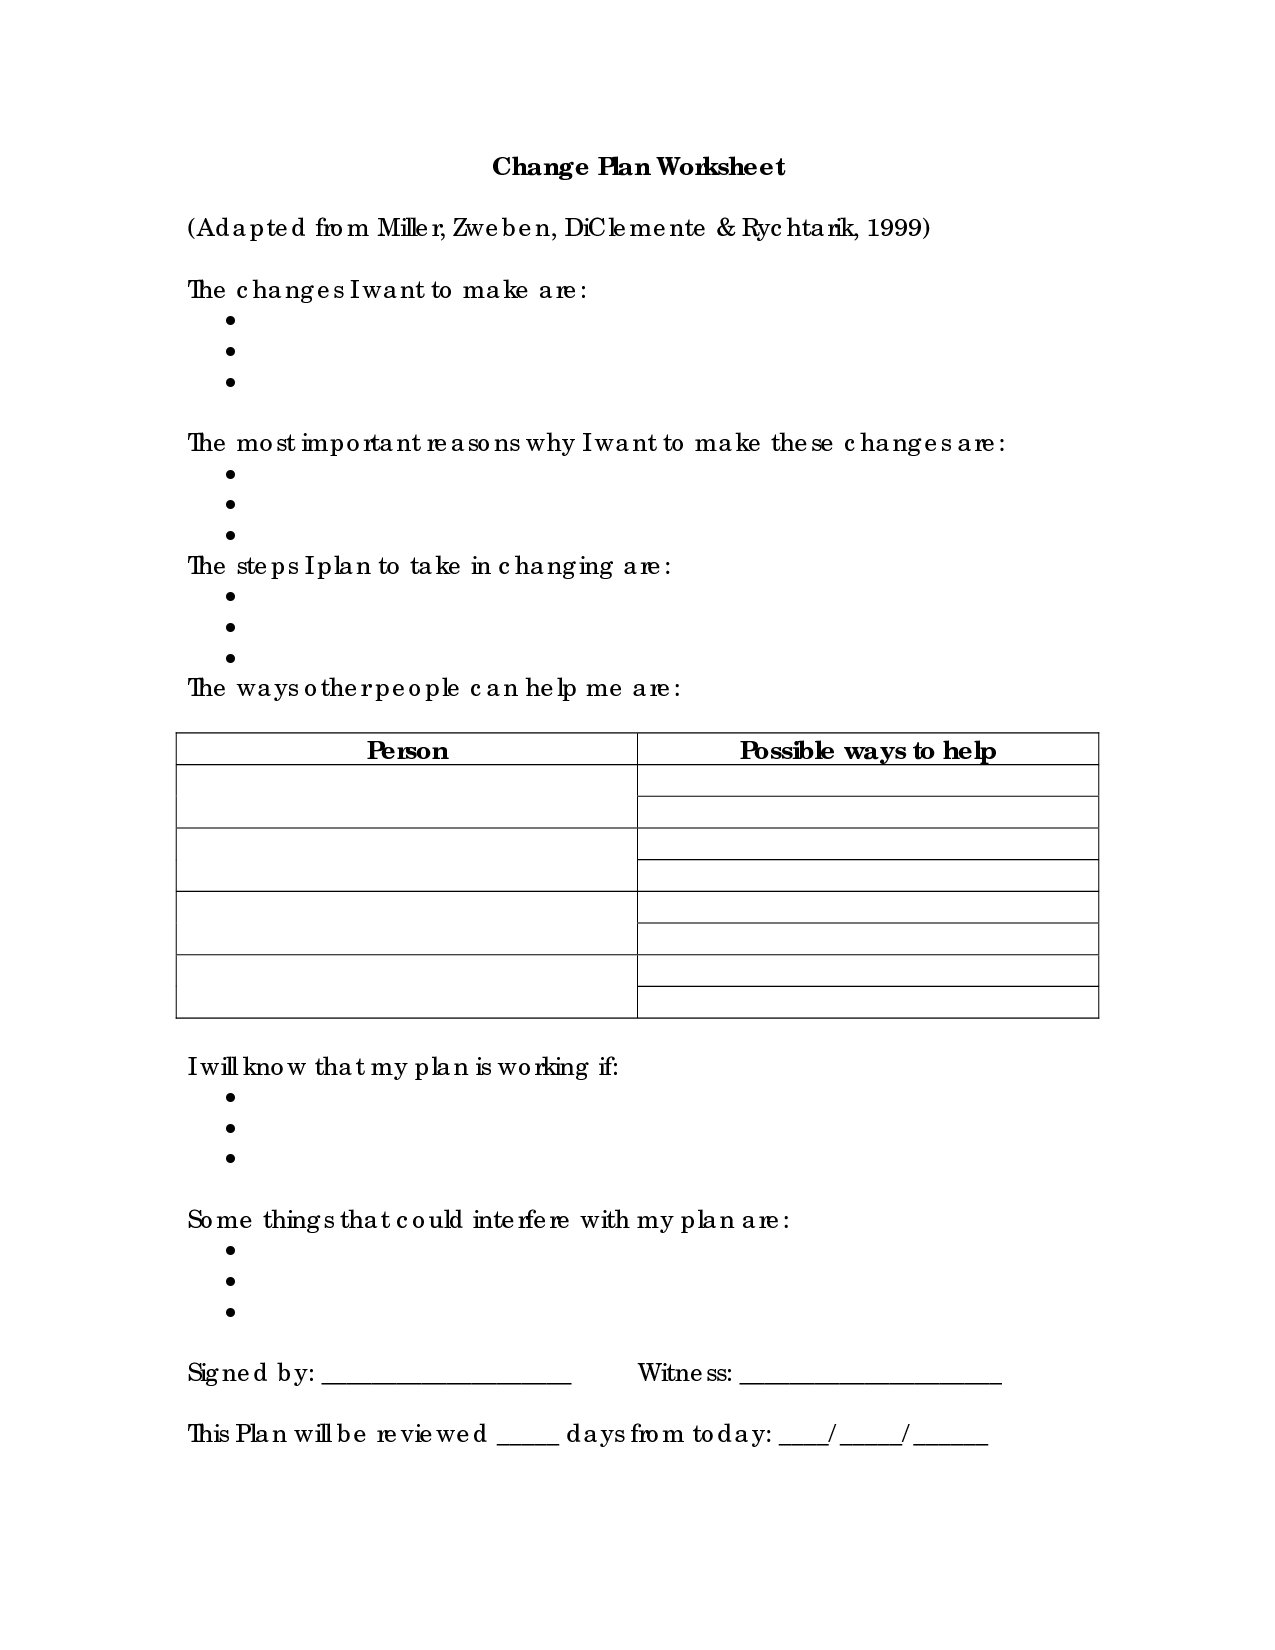 Substance Abuse Recovery Worksheets  Yooob Pertaining To Substance Abuse Worksheets For Adults